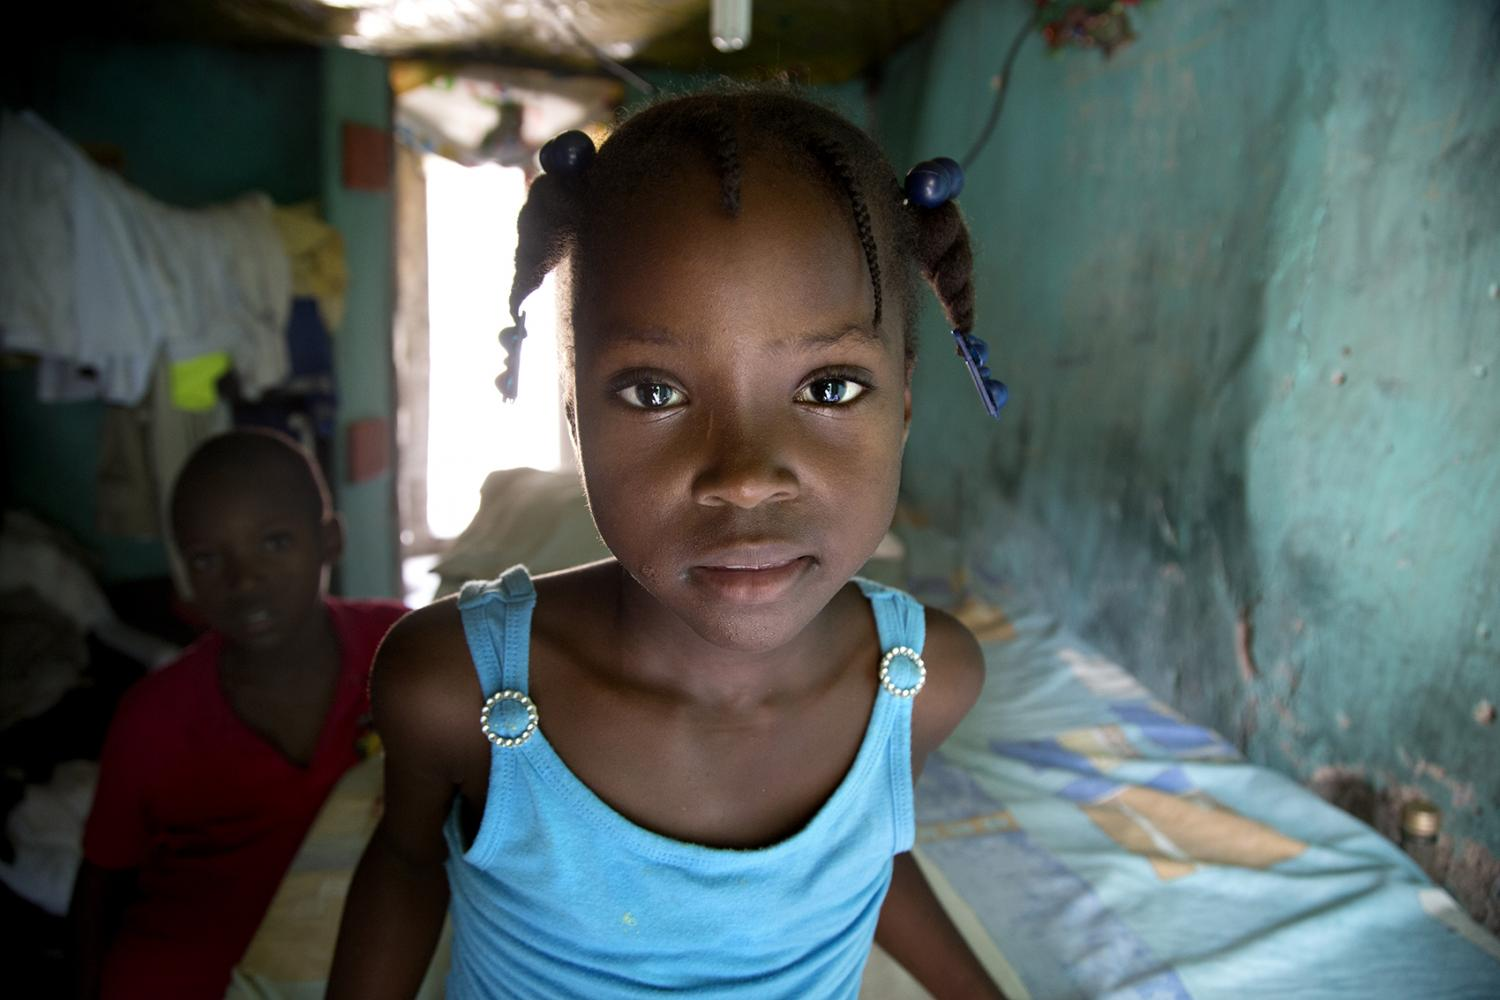 A little girl posing in the doorway of her home in Milot, Haiti.